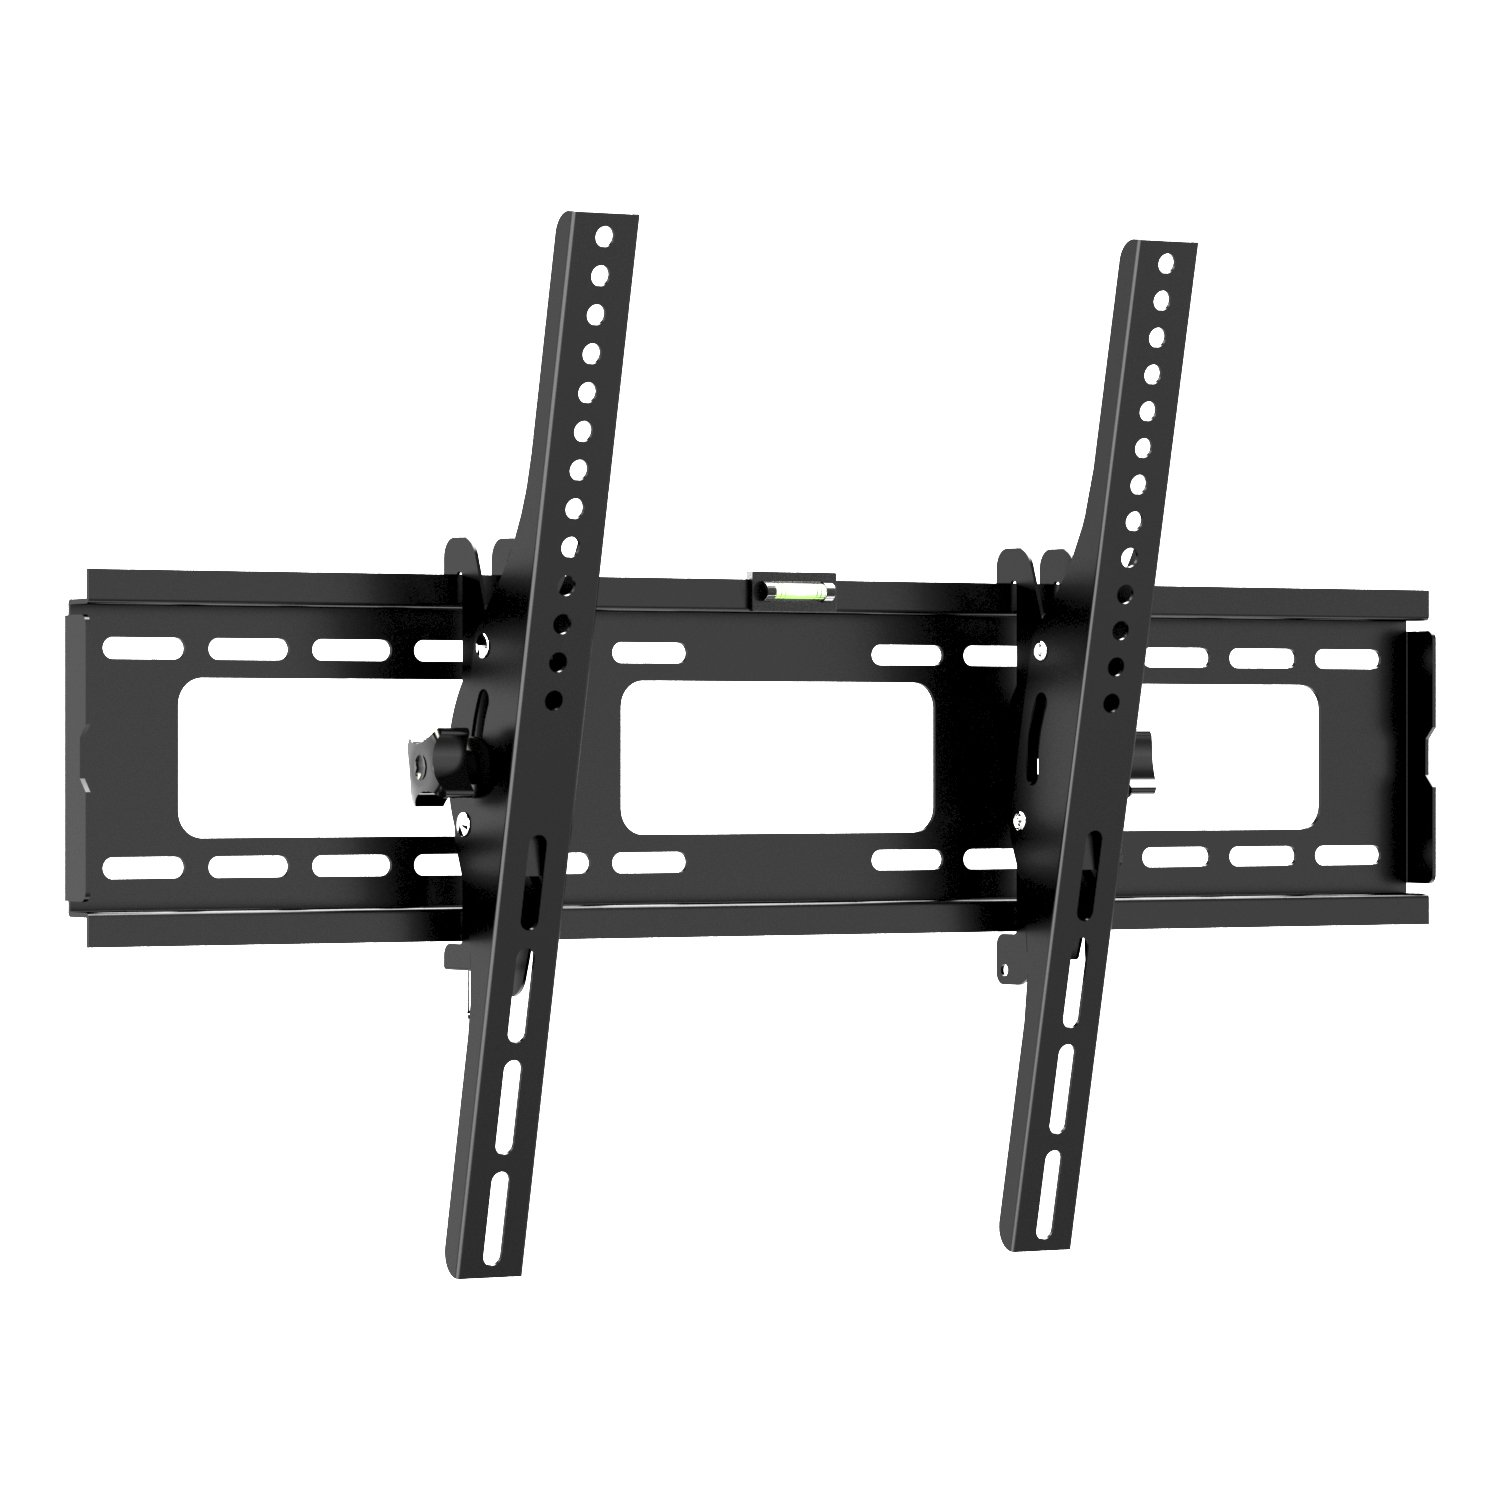 1home Tilt TV Wall Bracket Mount for 30-63 inches LCD LED 3D PLASMA TV + FREE Fittings Bracketsales123 117MB